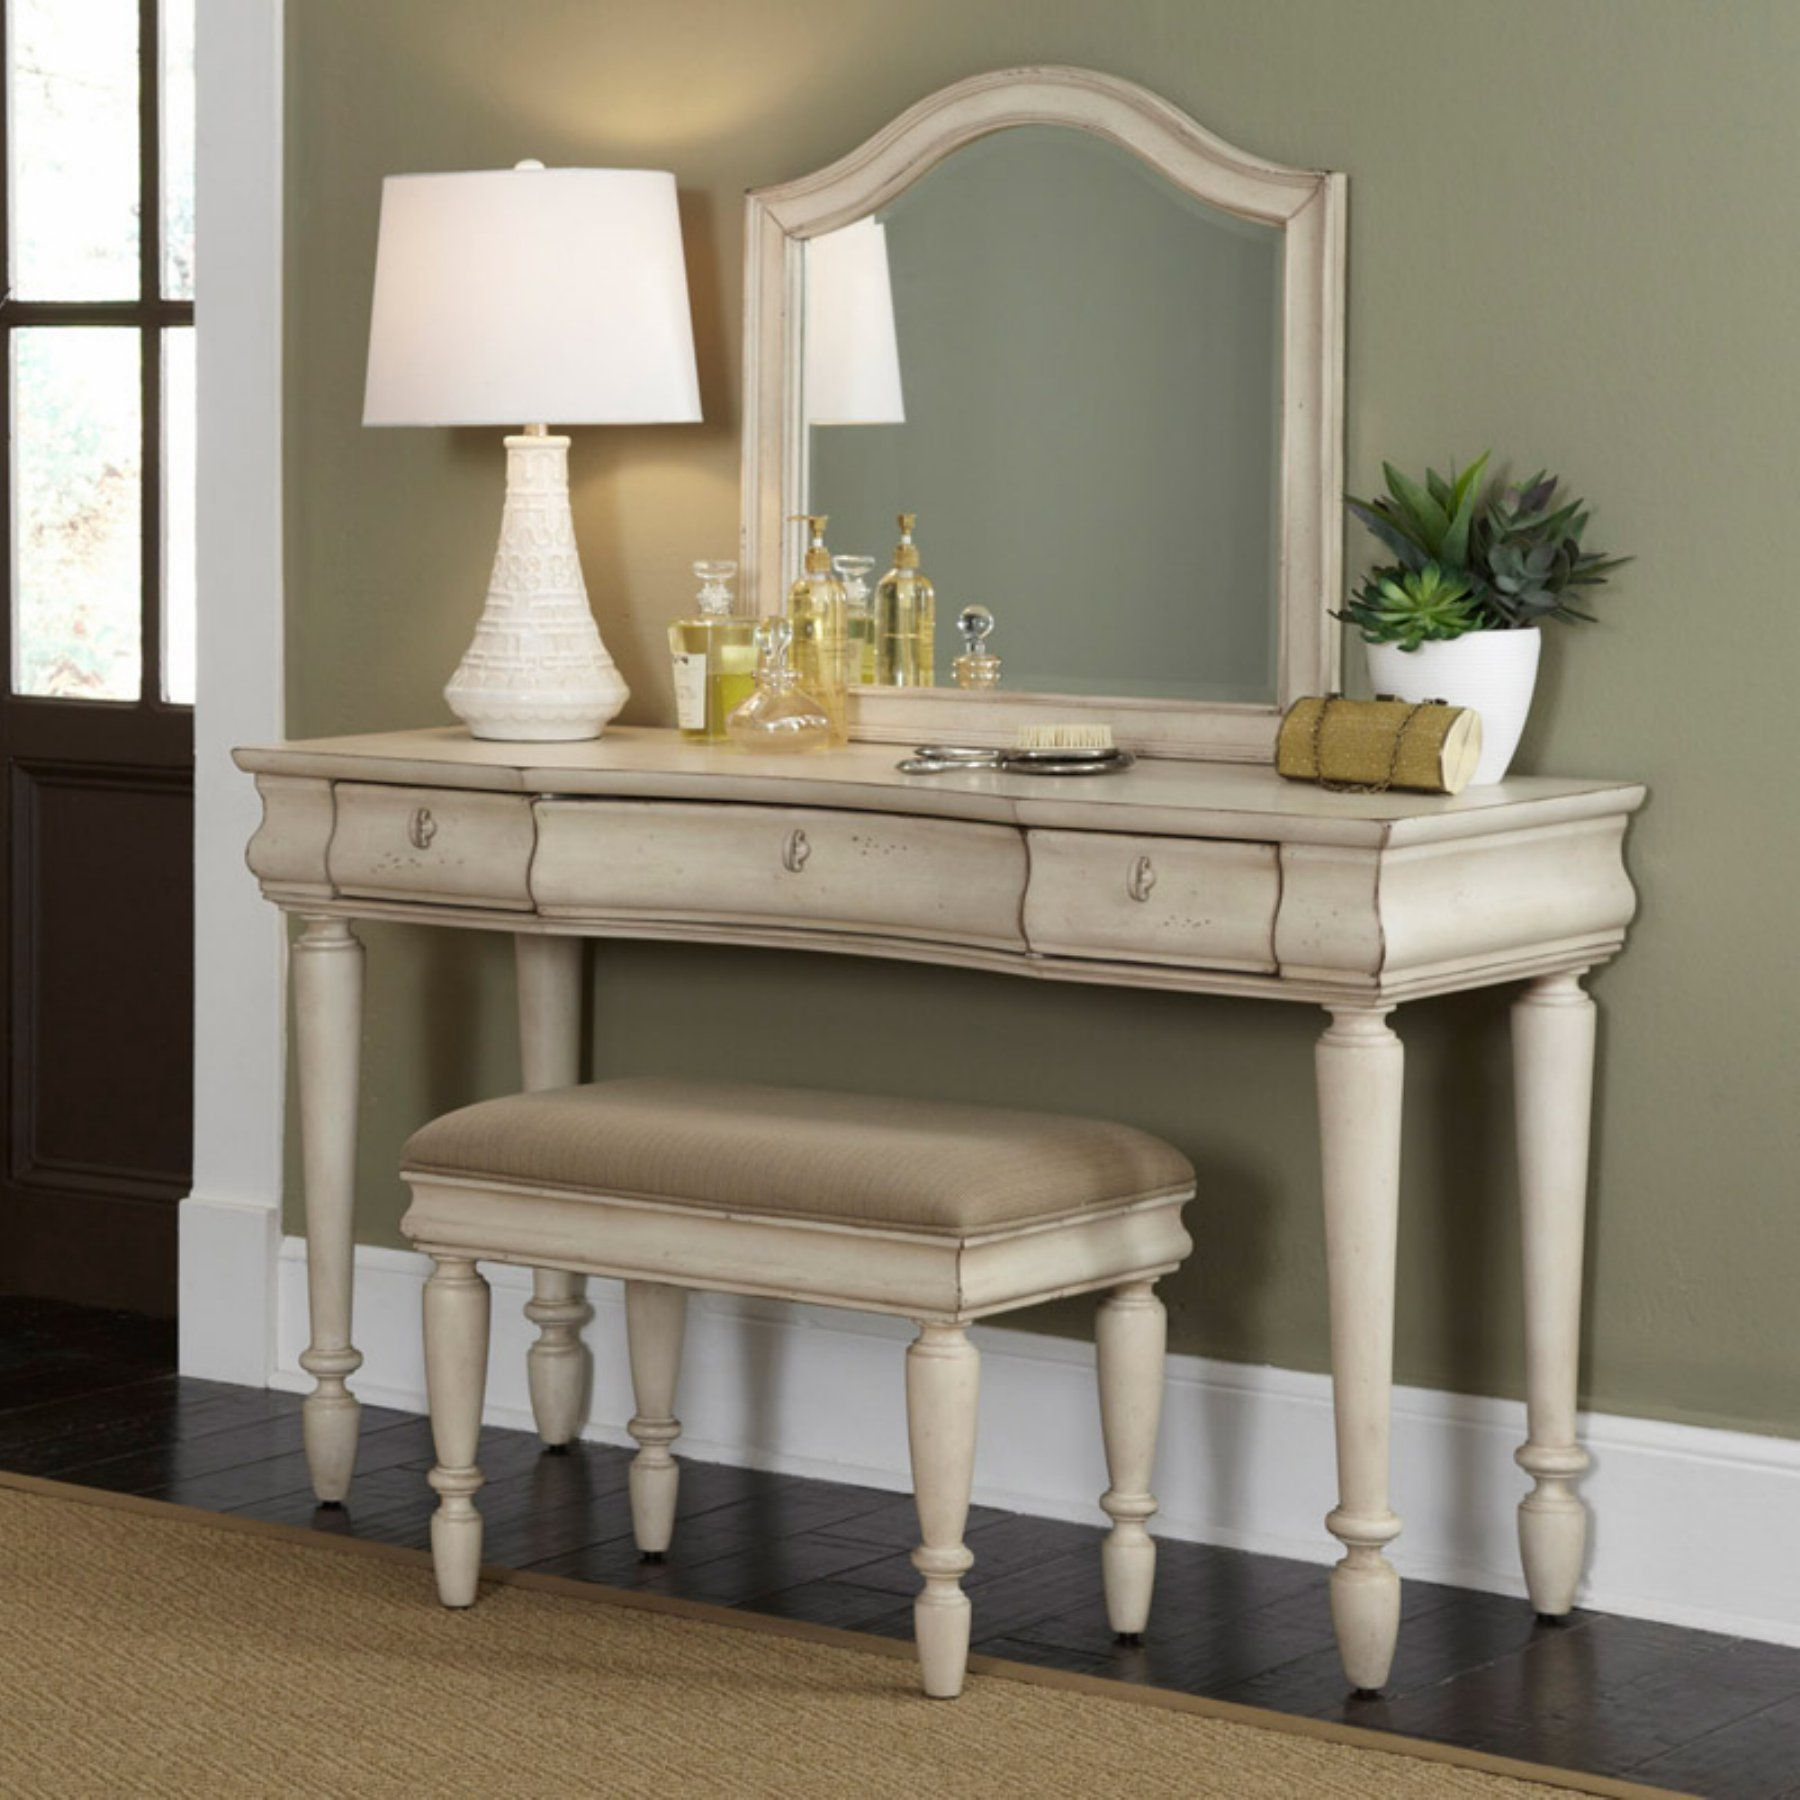 Rustic Traditions Bedroom Vanity Set - Rustic White - LFI1897 ...